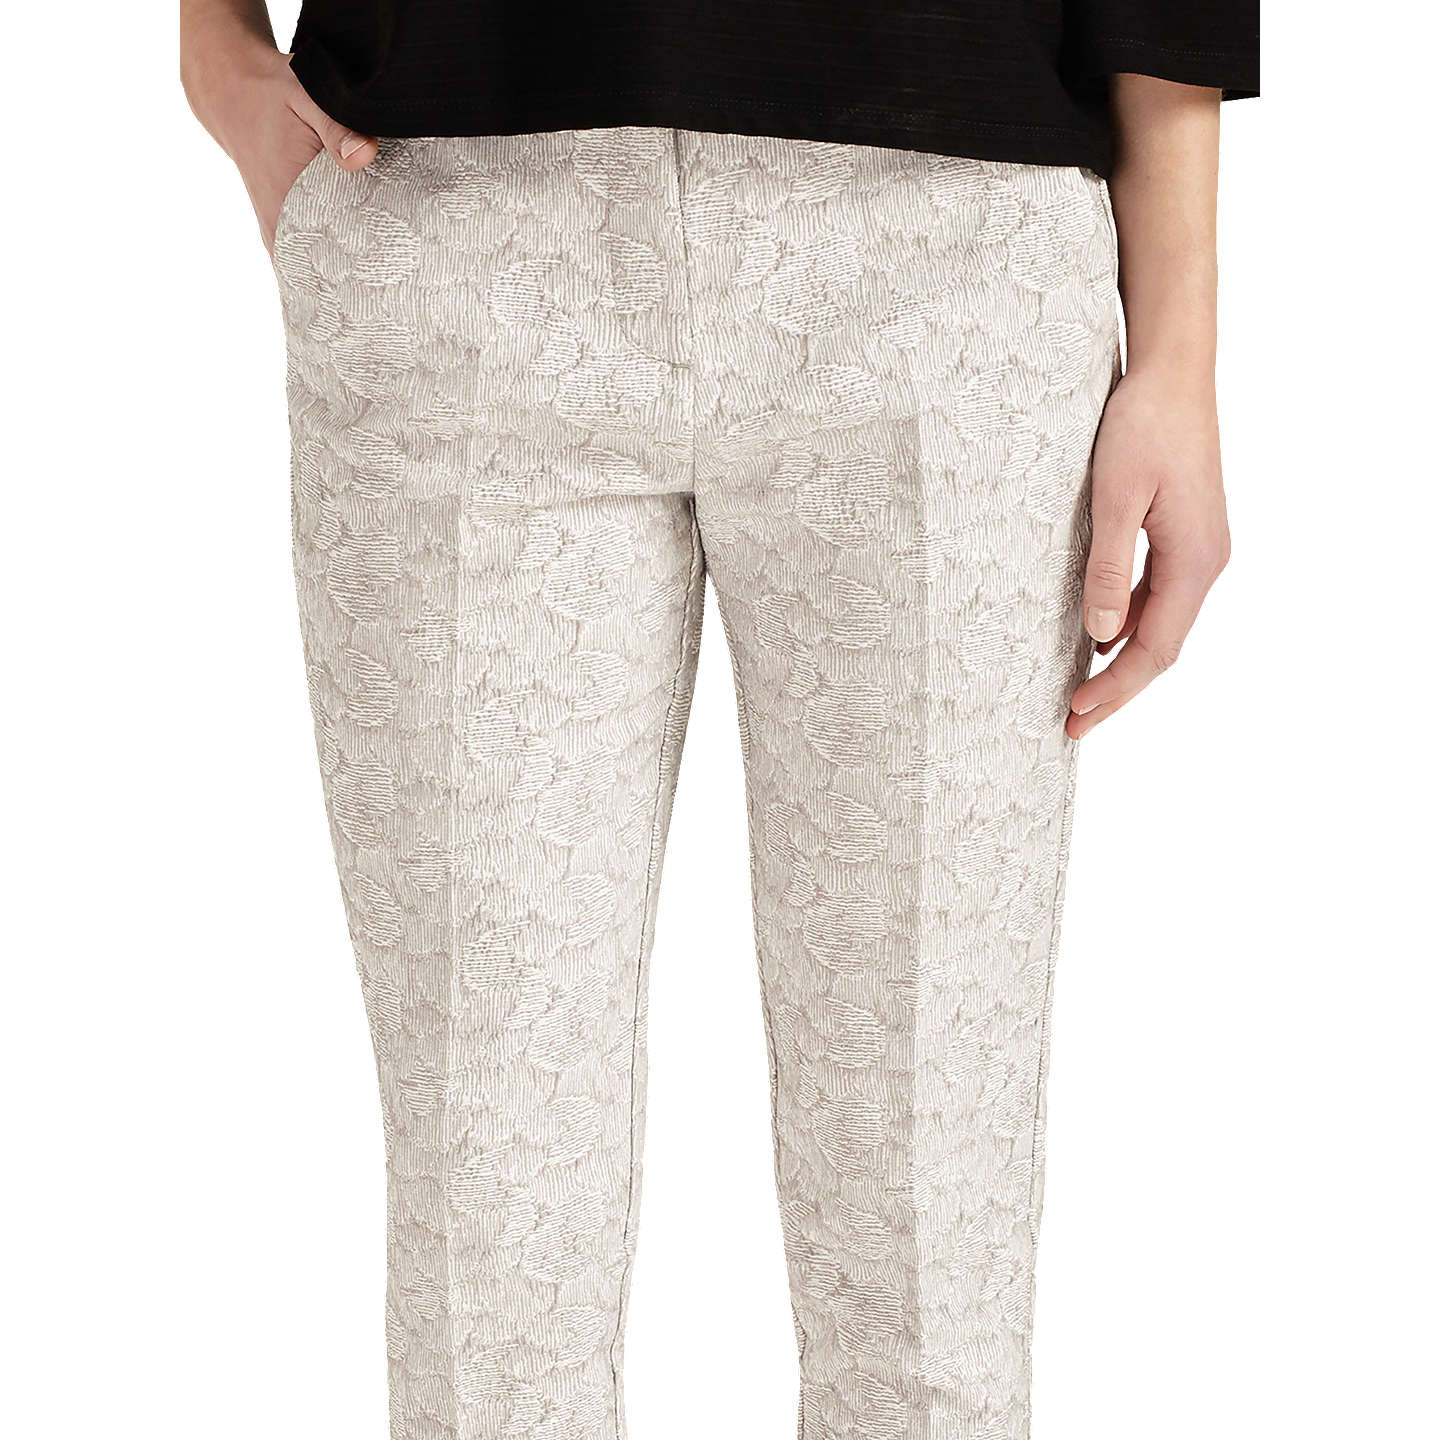 BuyPhase Eight Erica Jacquard Trousers, Ivory/Camel, 8 Online at johnlewis.com